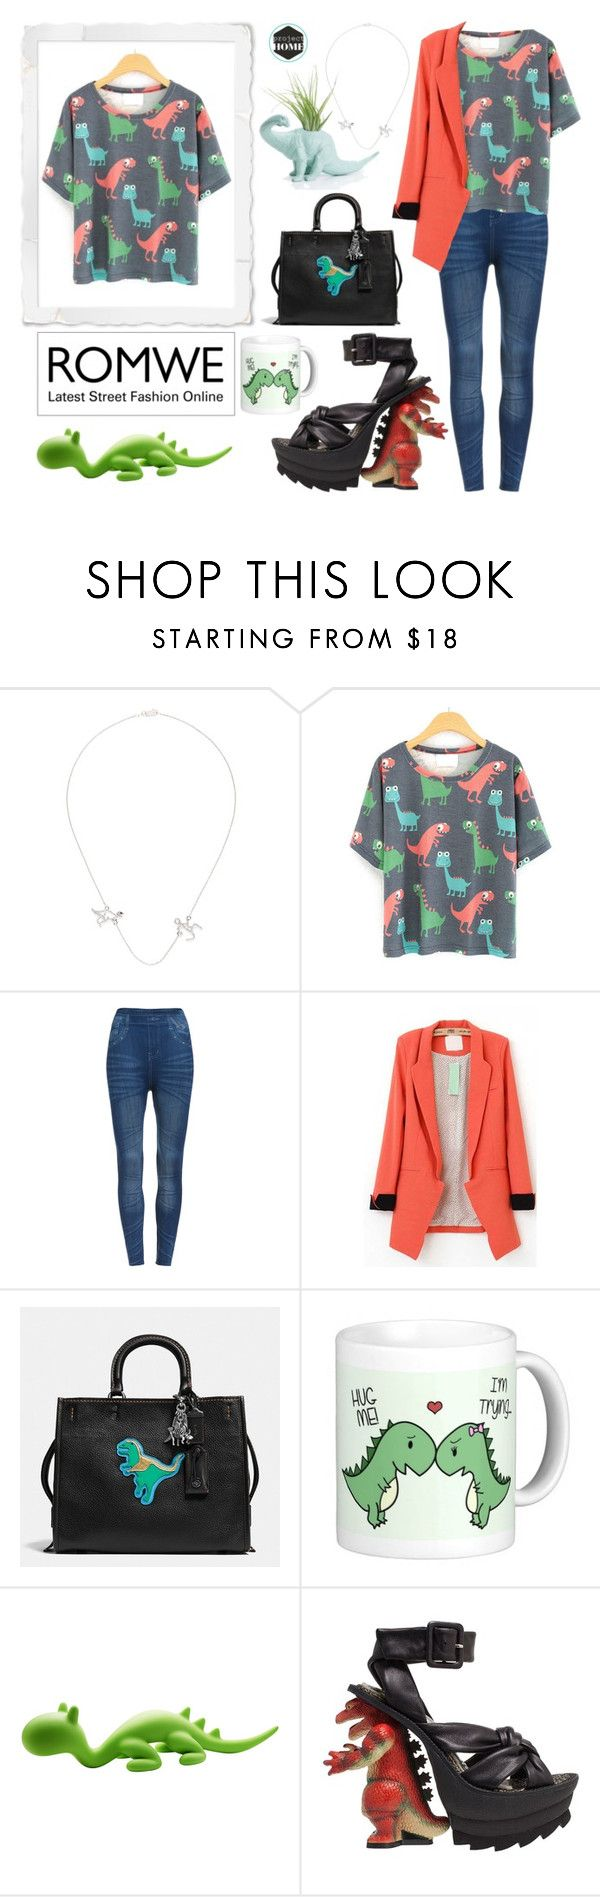 """Untitled #301"" by riell-projecthome ❤ liked on Polyvore featuring Khai Khai, Studio Eero Aarnio, romwe and dinosaur"